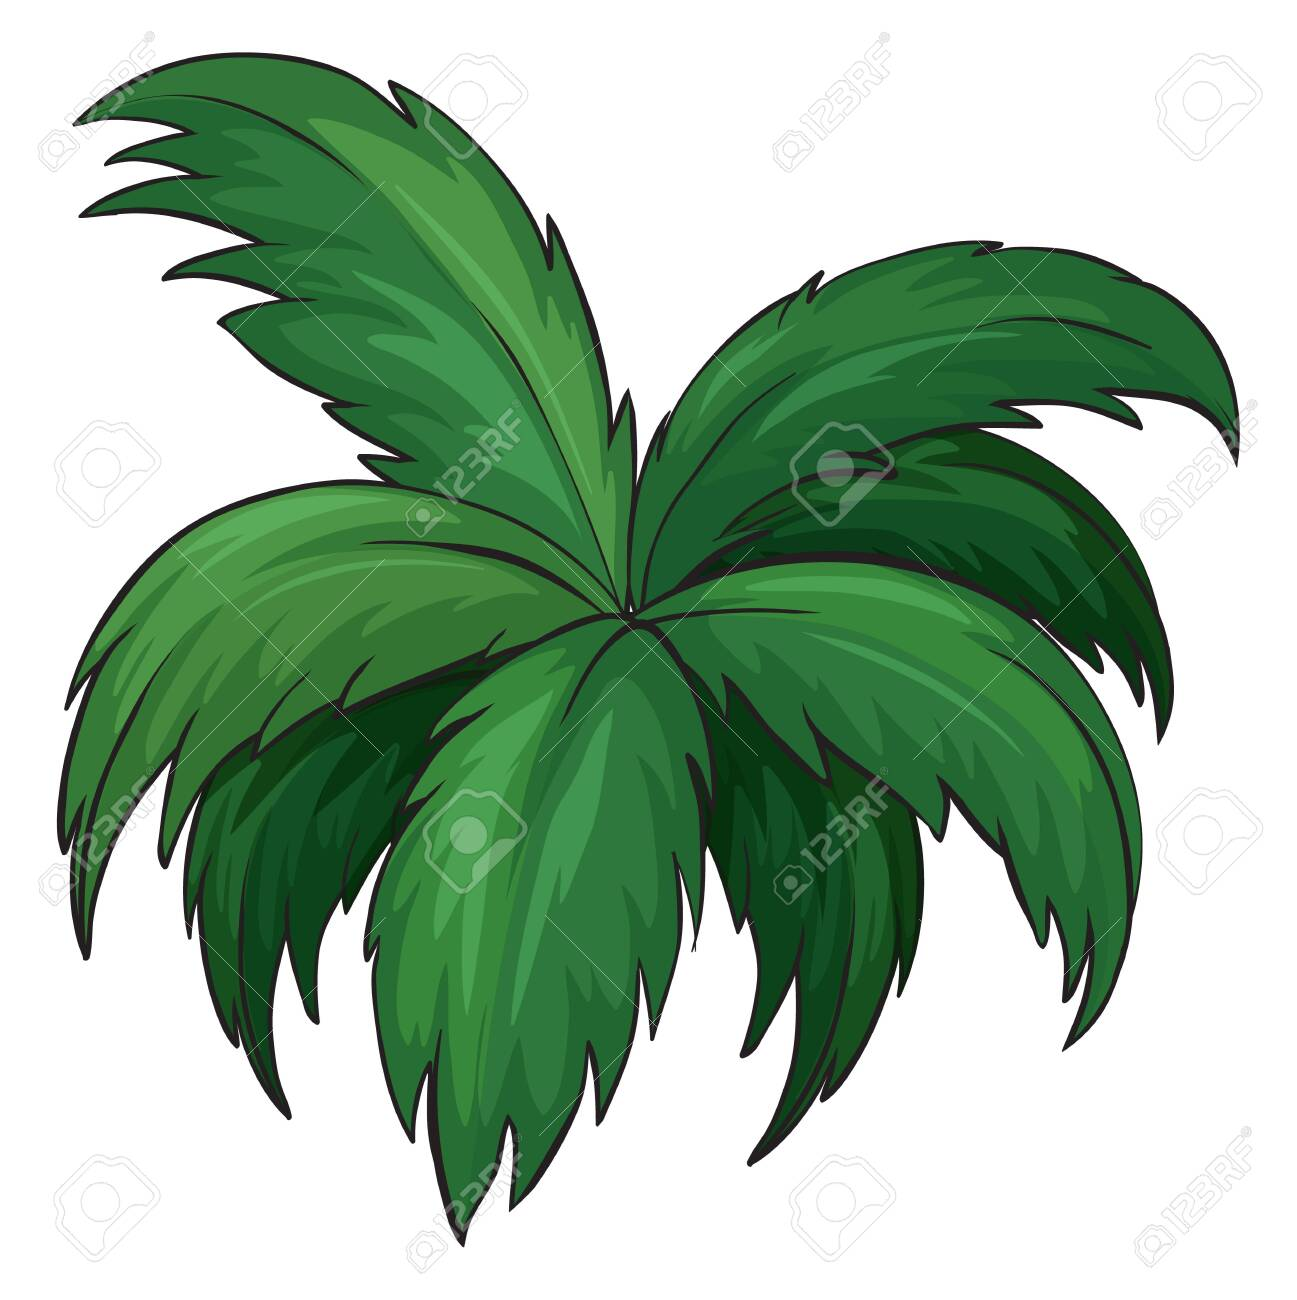 Illustration of a plant on a white background Stock Vector - 17046698